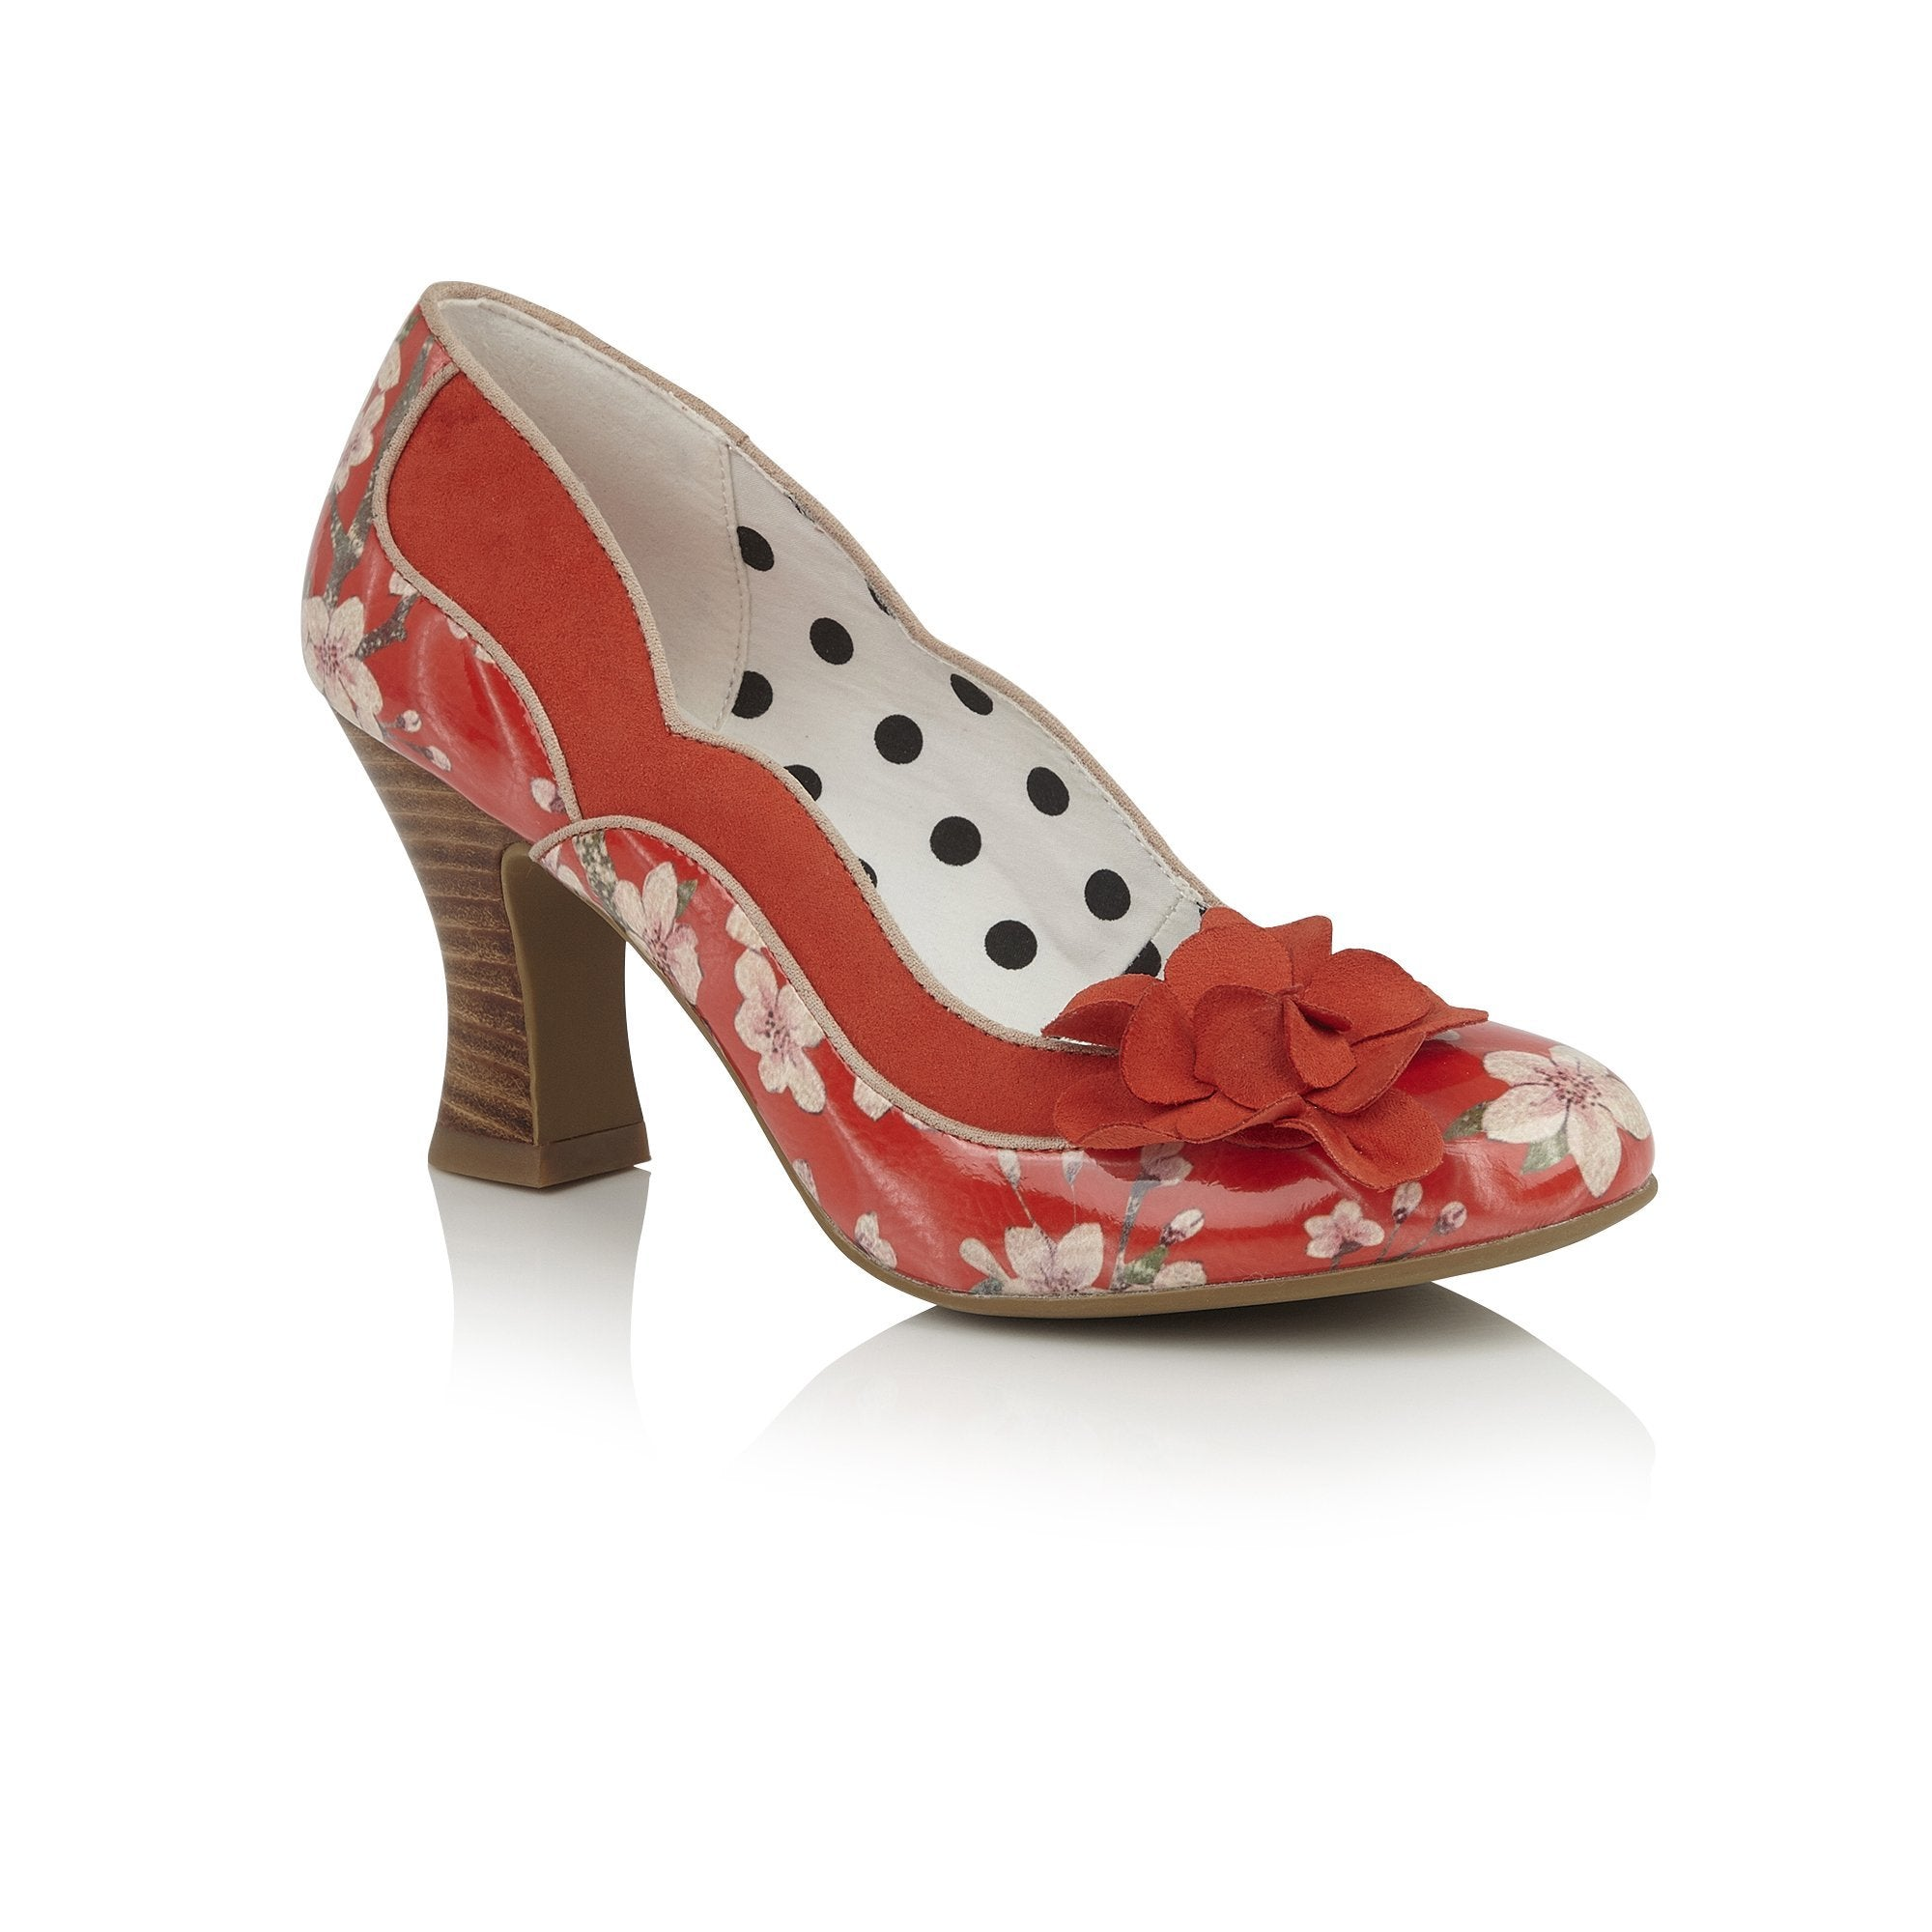 676d62a5 Ruby Shoo Coral Red Floral Heeled Corsage Viola Court Shoes